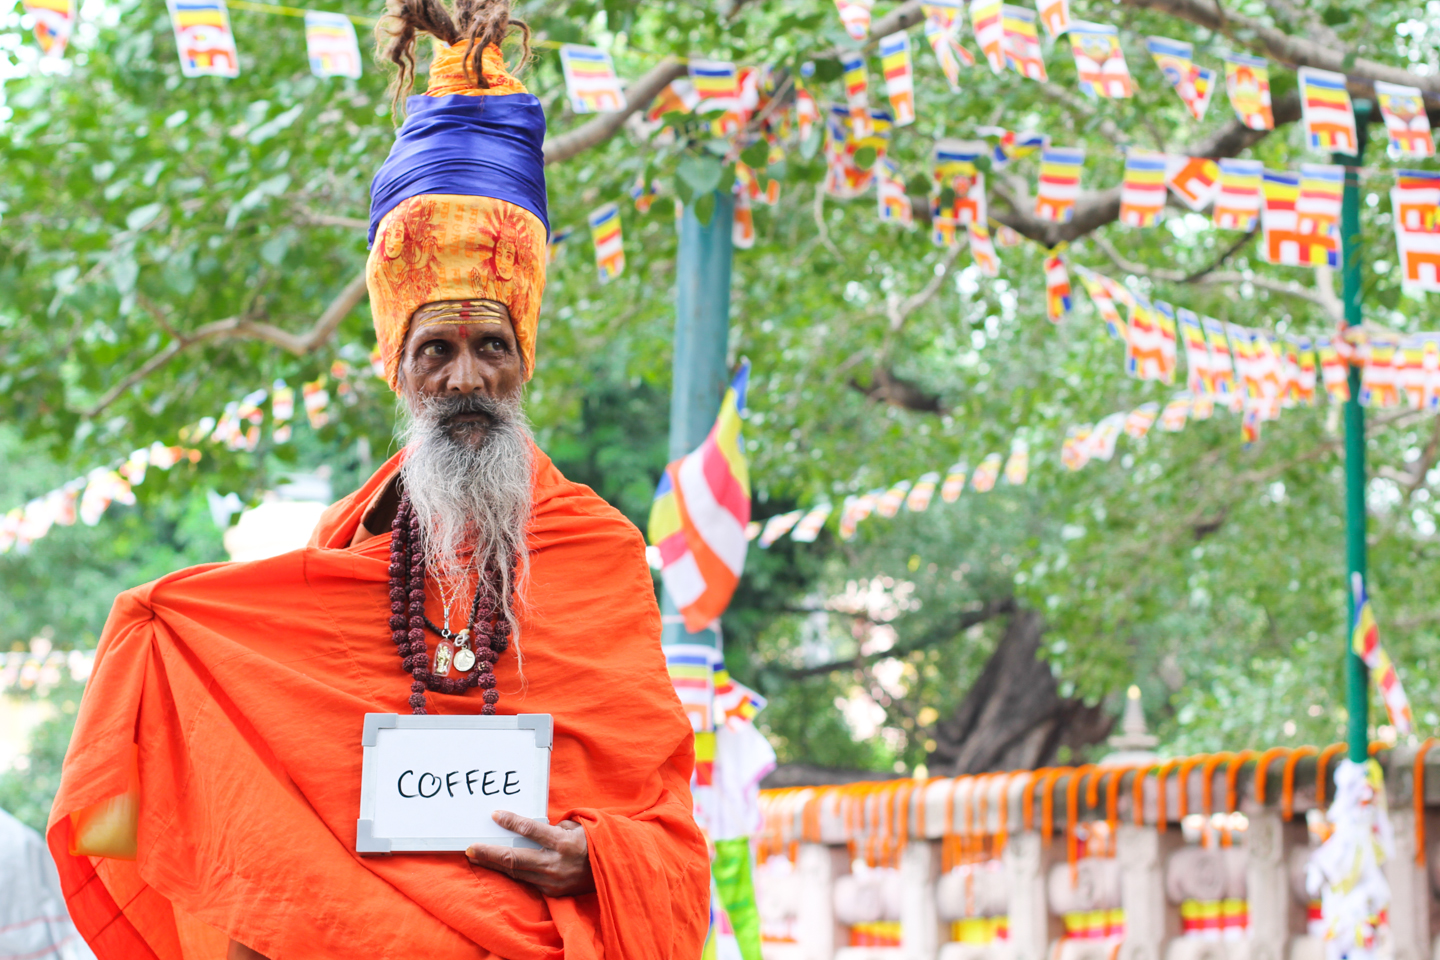 Suchetan Giri Goswami, a sadhu or holy man, has traveled the length and breadth of India. He is pictured here visiting the Mahabodhi Temple in Bodh Gaya, Bihar, the site where Siddhartha Gautama attained enlightenment under a pipal tree 2500 years ago and became the Buddha. Suchetan prefers coffee to tea.